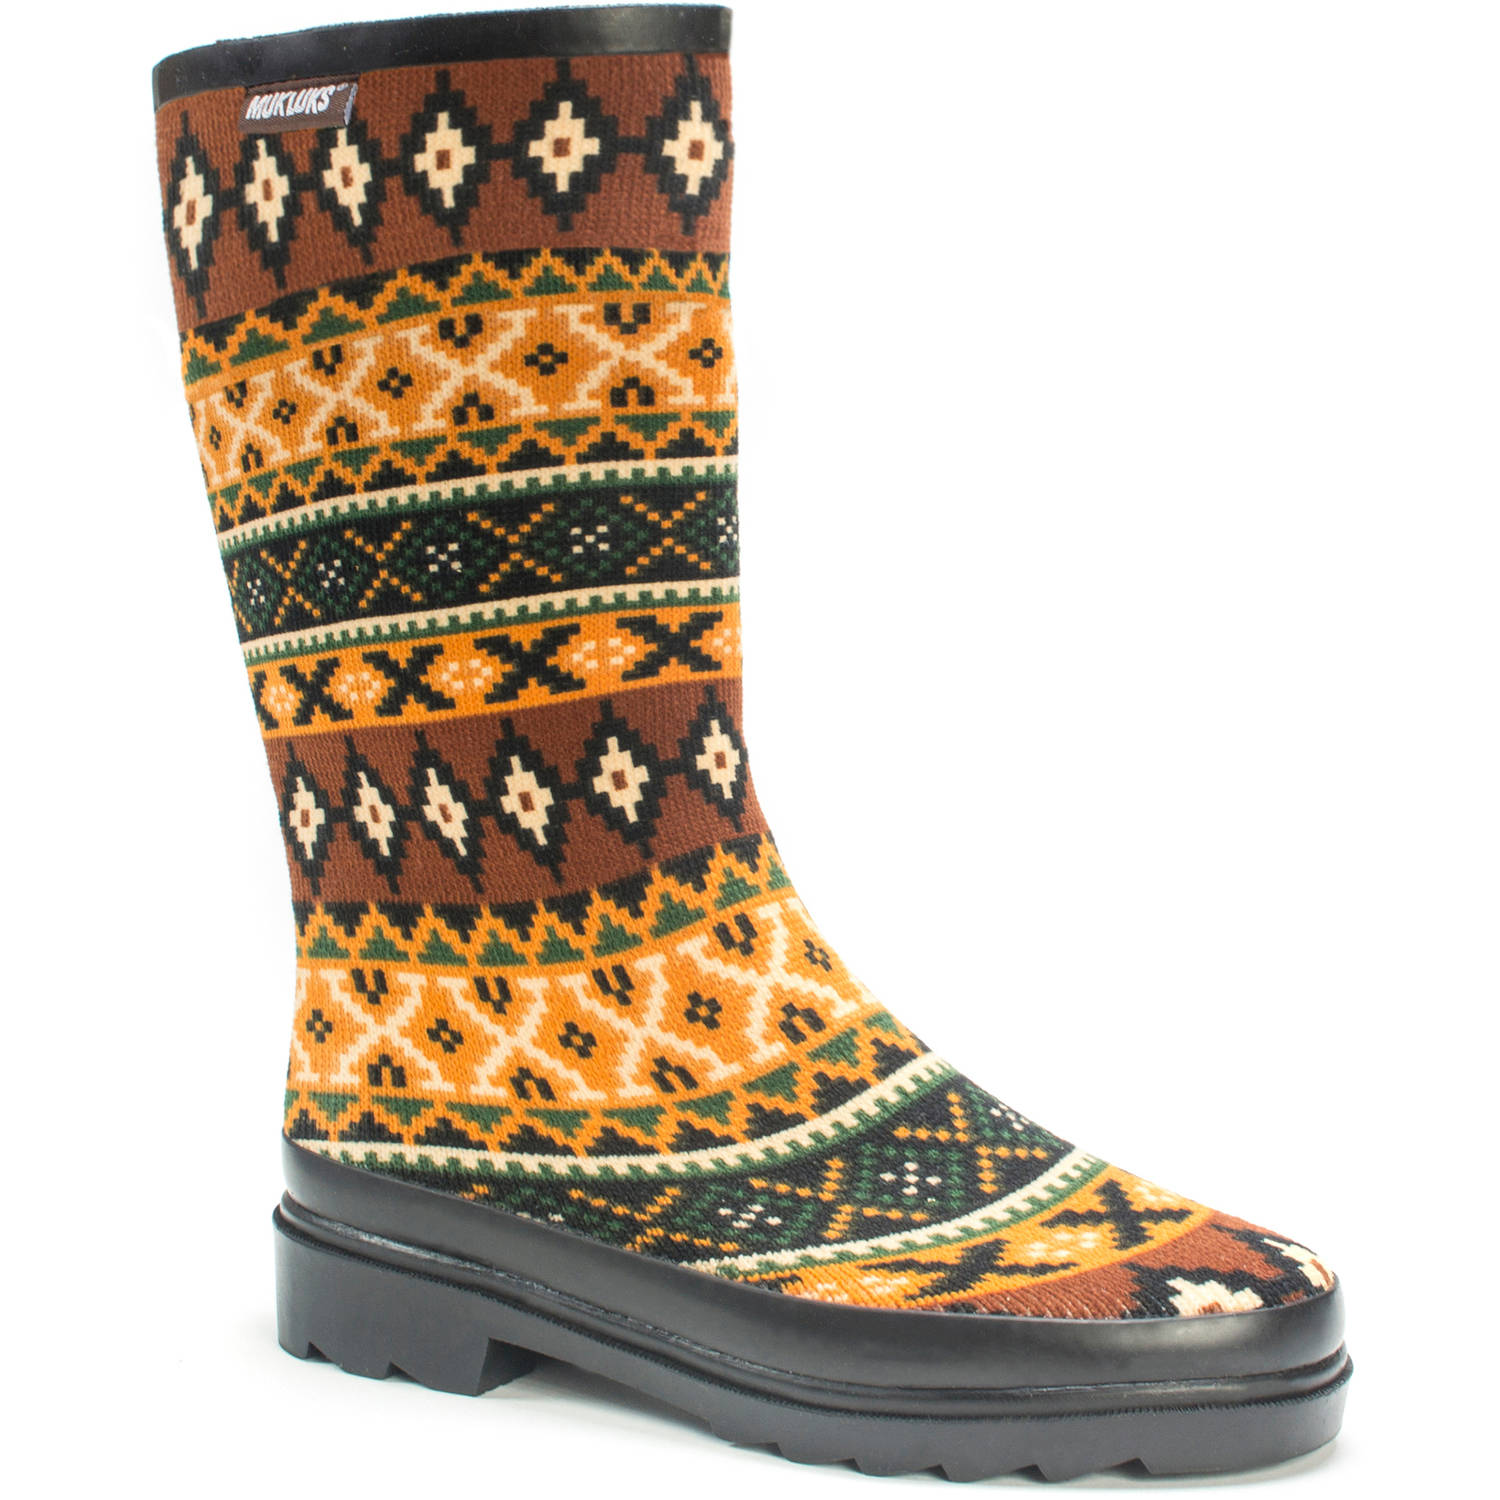 MUK LUKS Women's Anabelle Rainboot